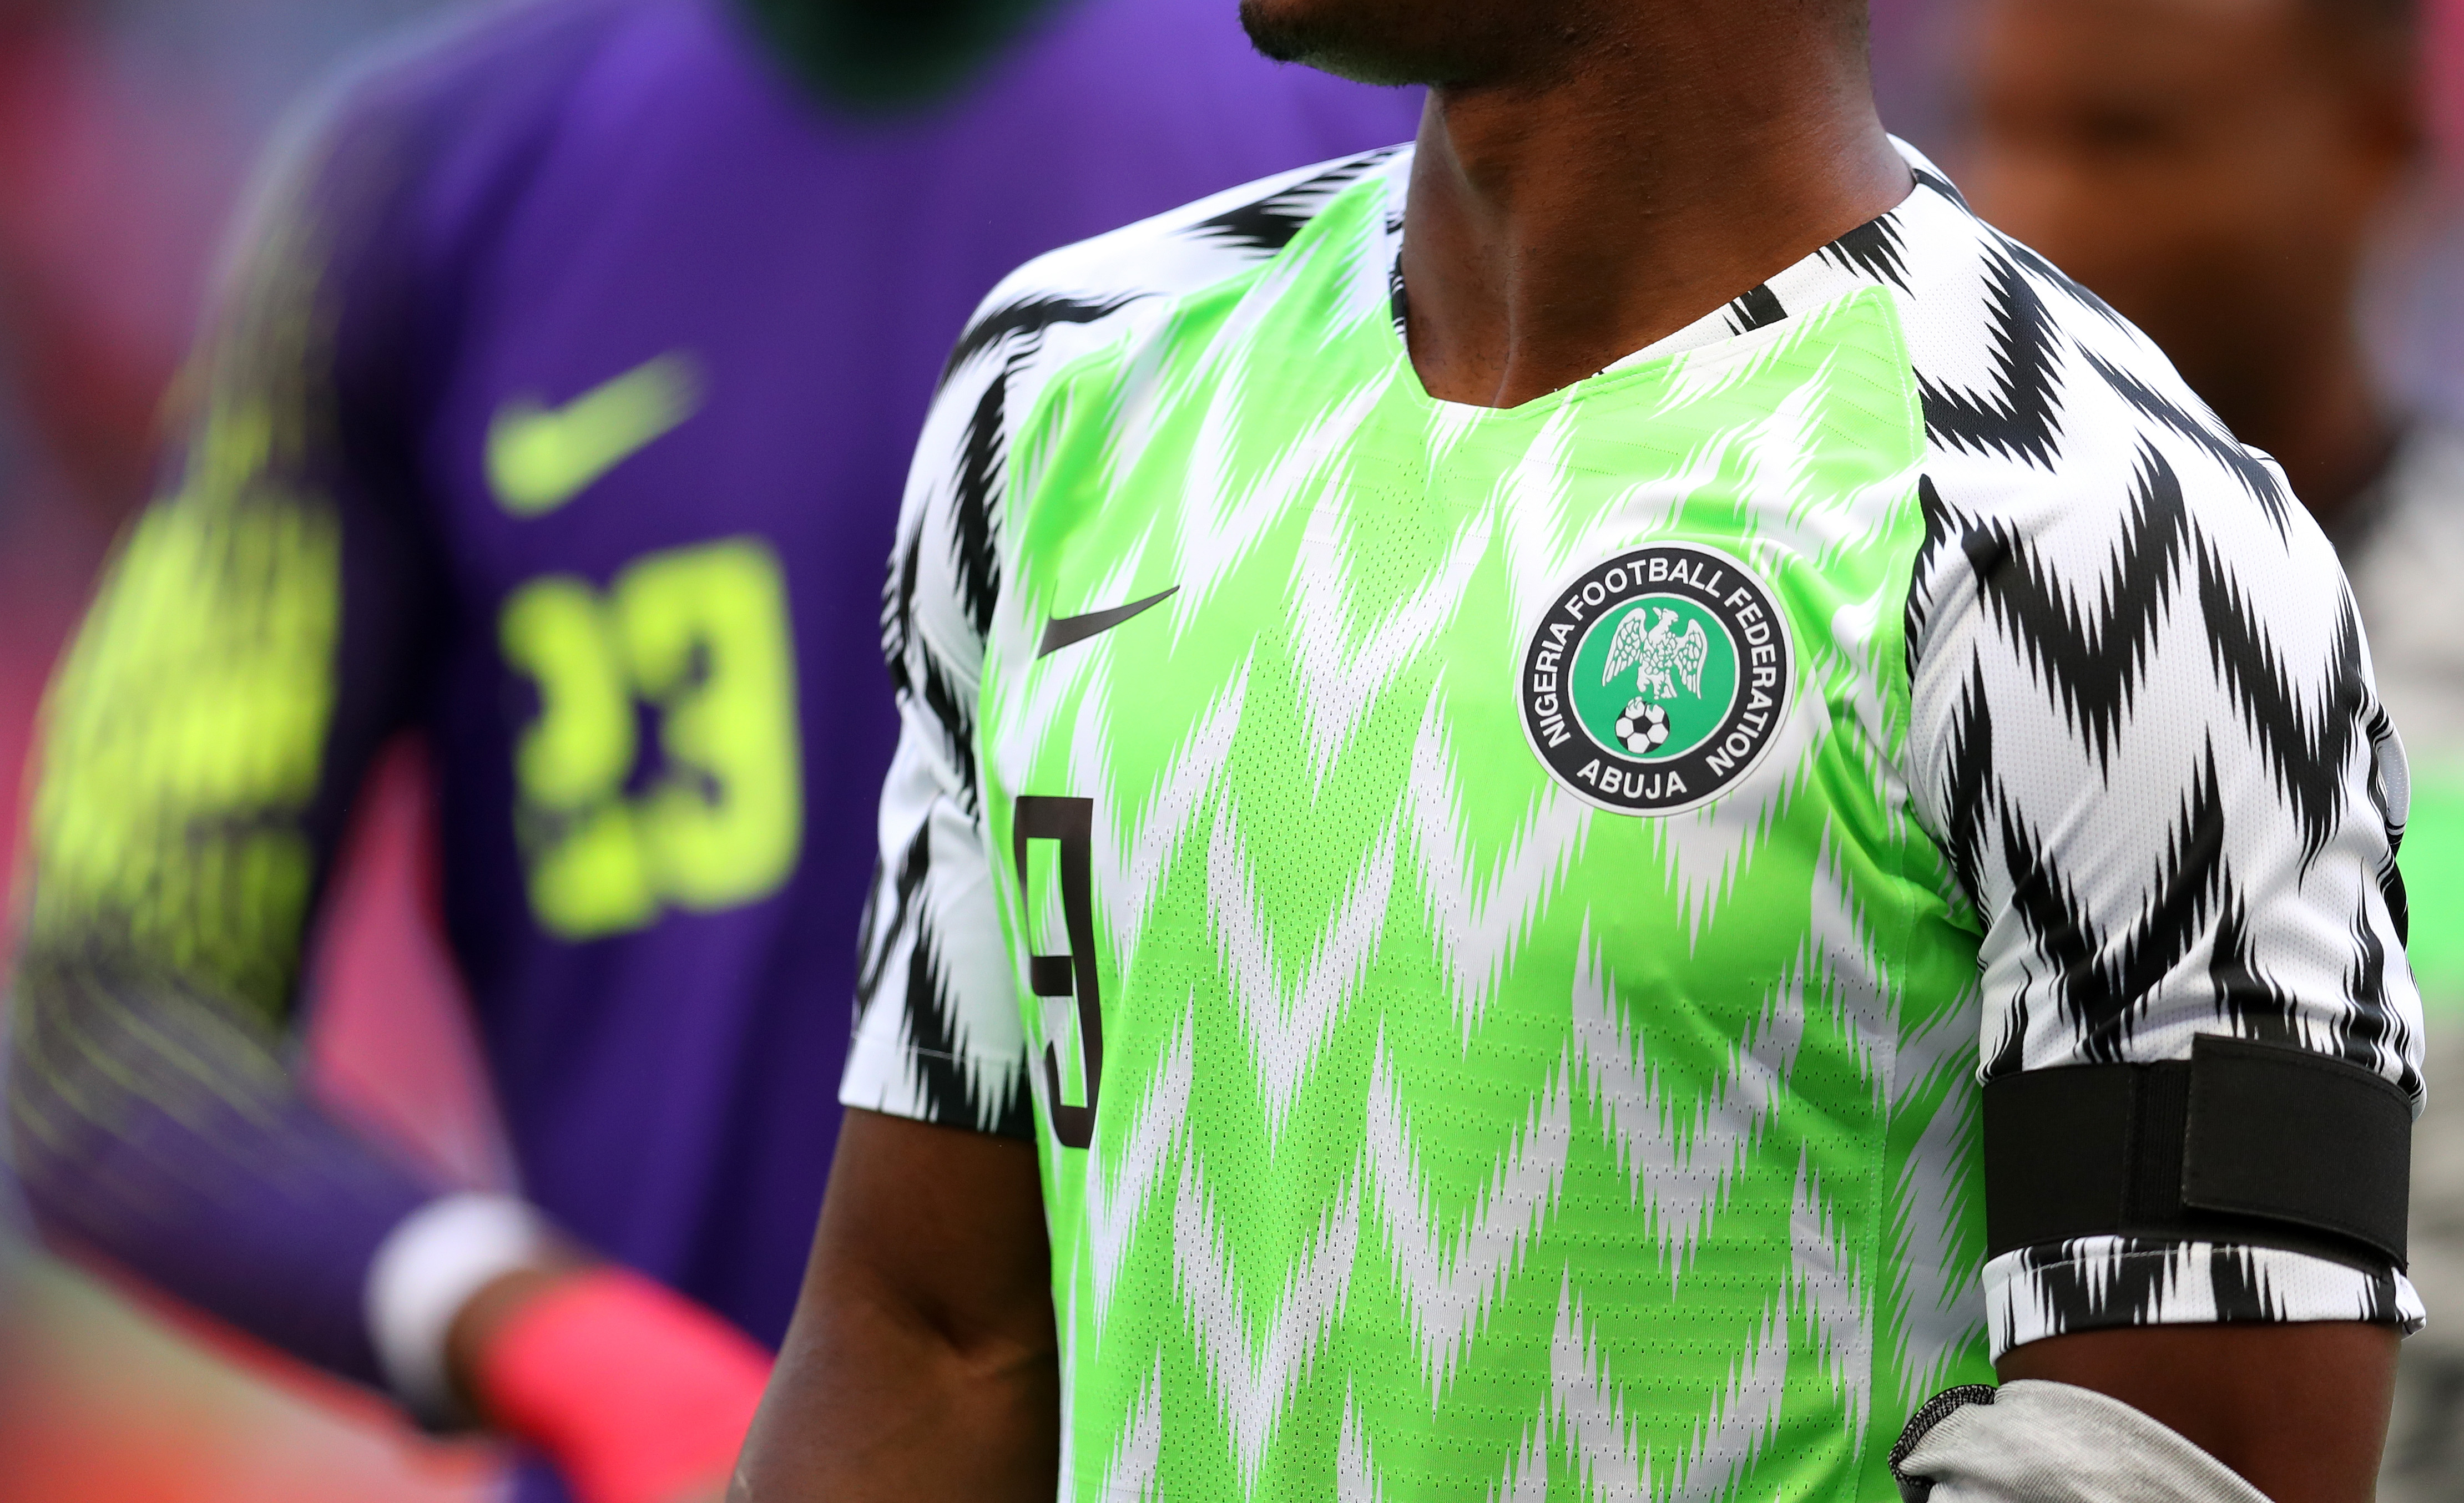 Detail of the Nigeria badge and shirt during the international friendly match between England and Nigeria at Wembley Stadium on June 2, 2018 in London, England.